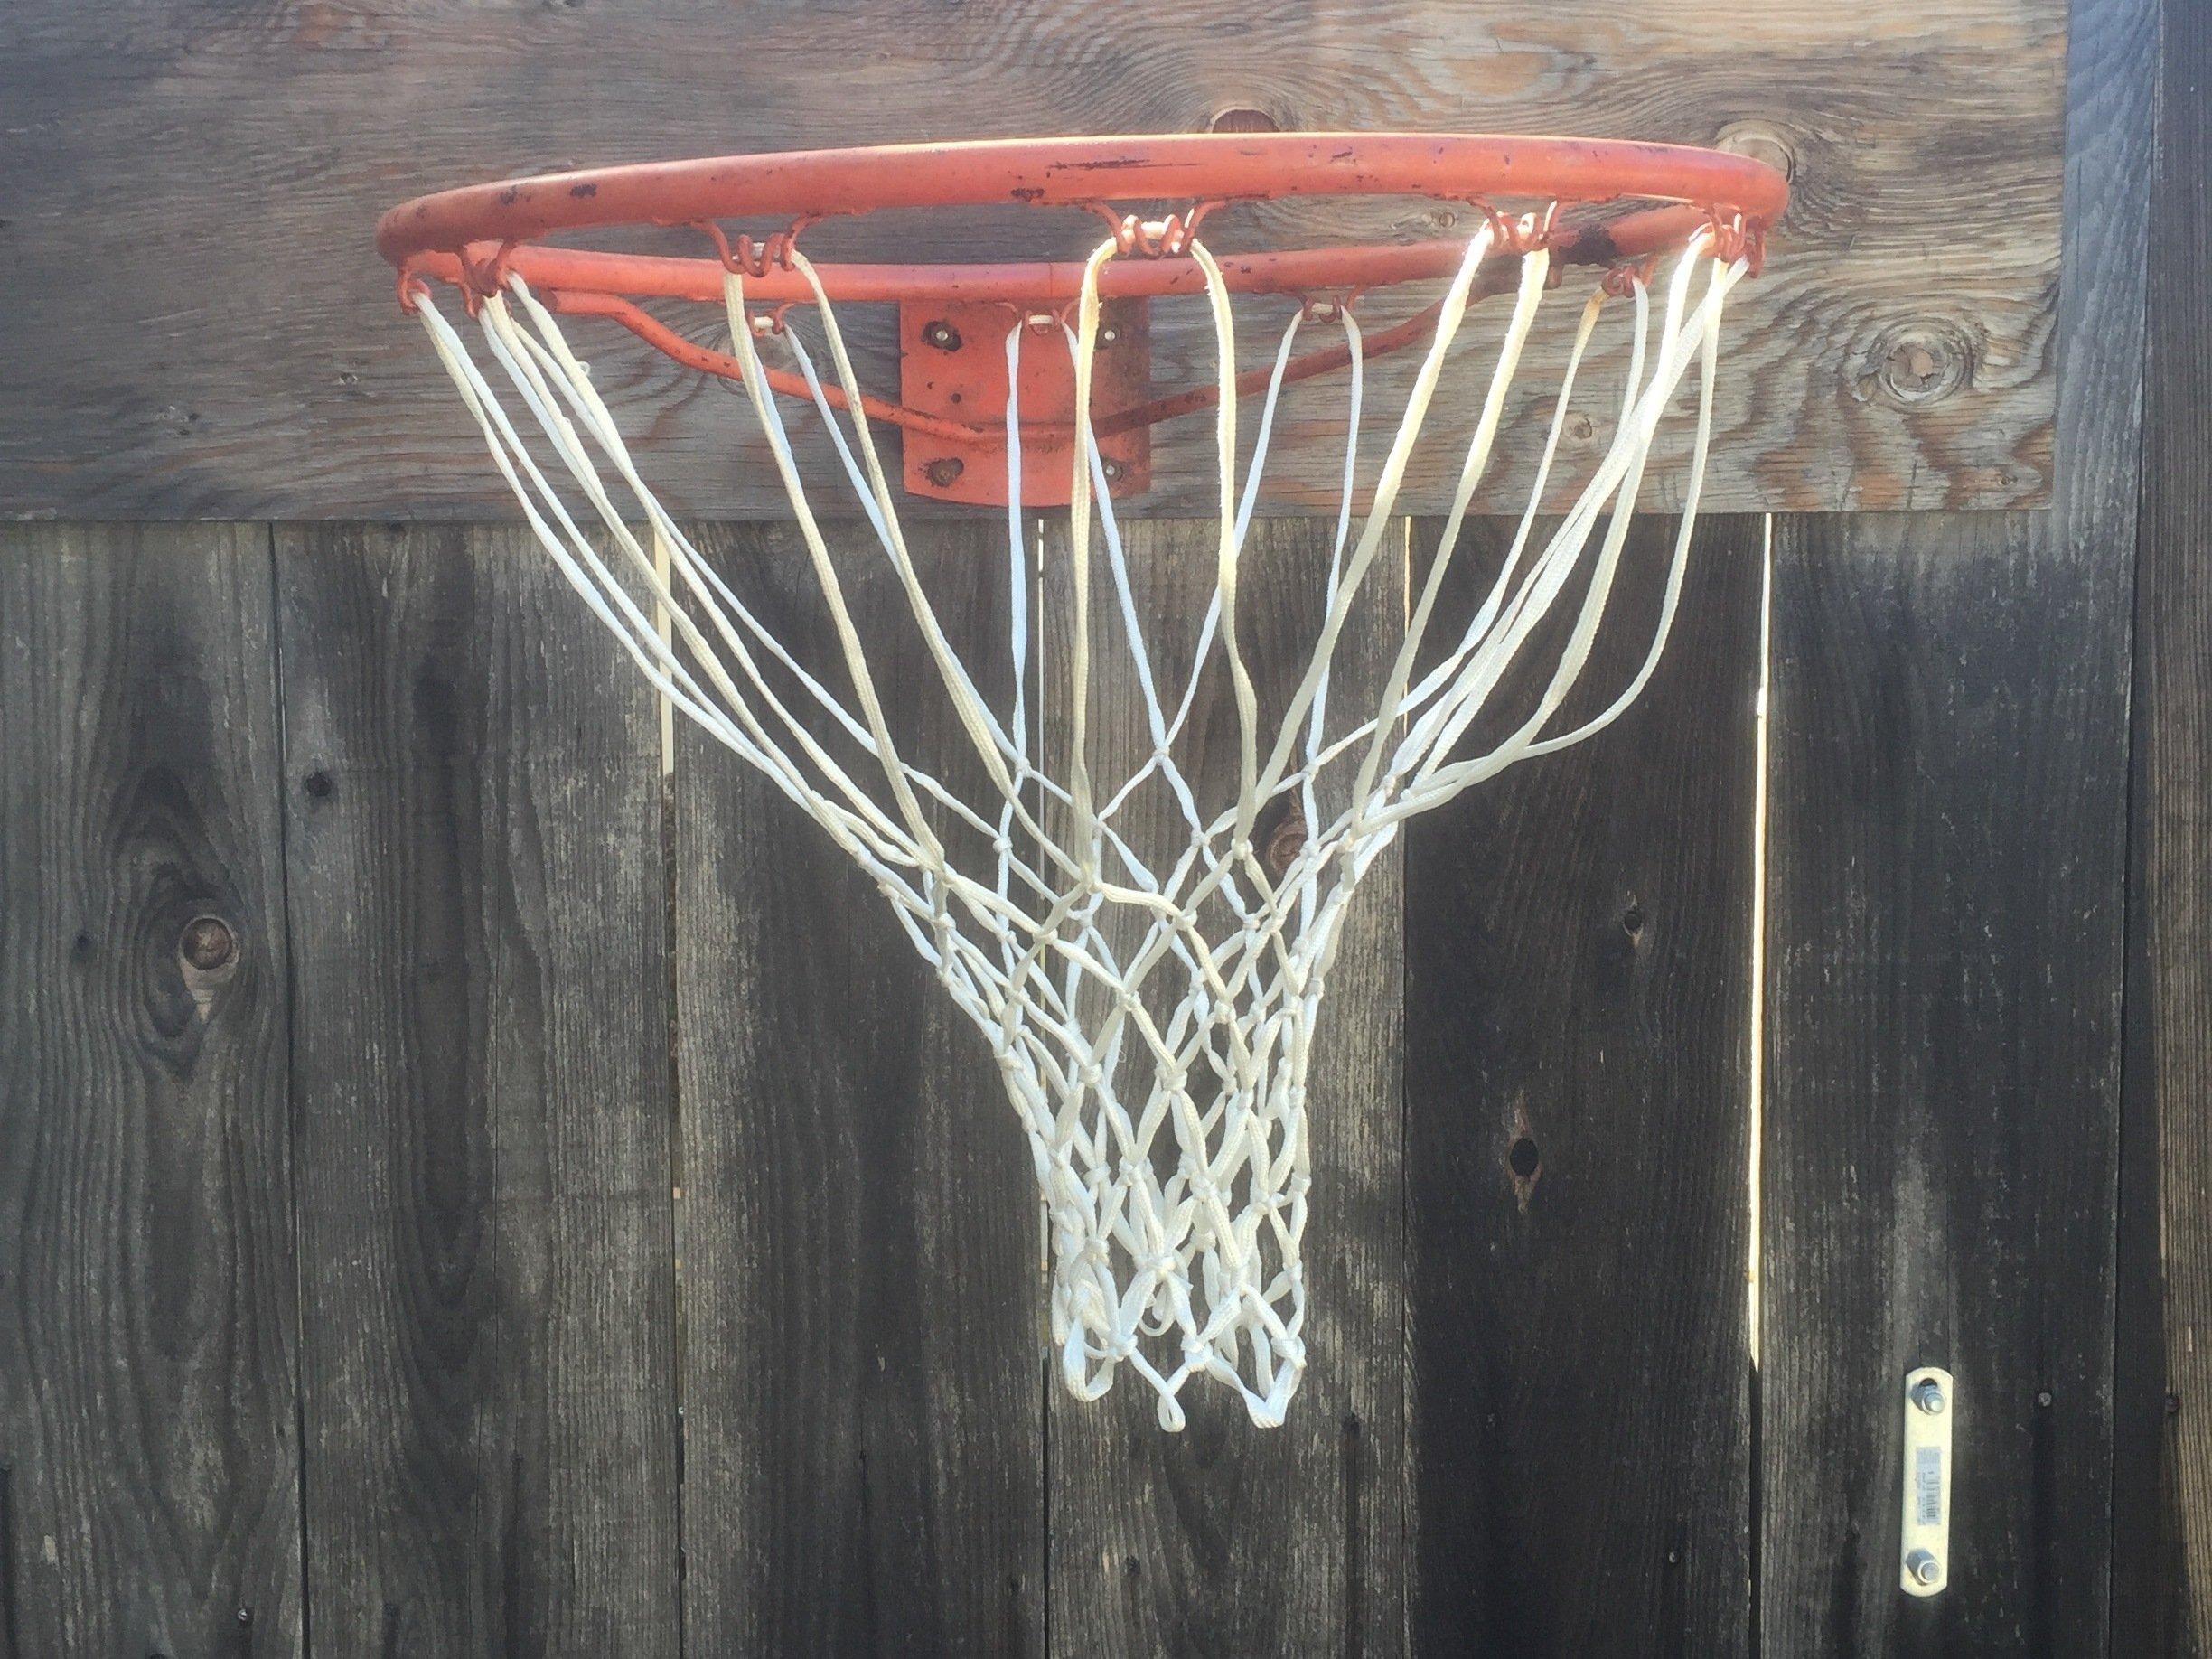 How to Replace the Net on a Basketball Hoop - iFixit ...